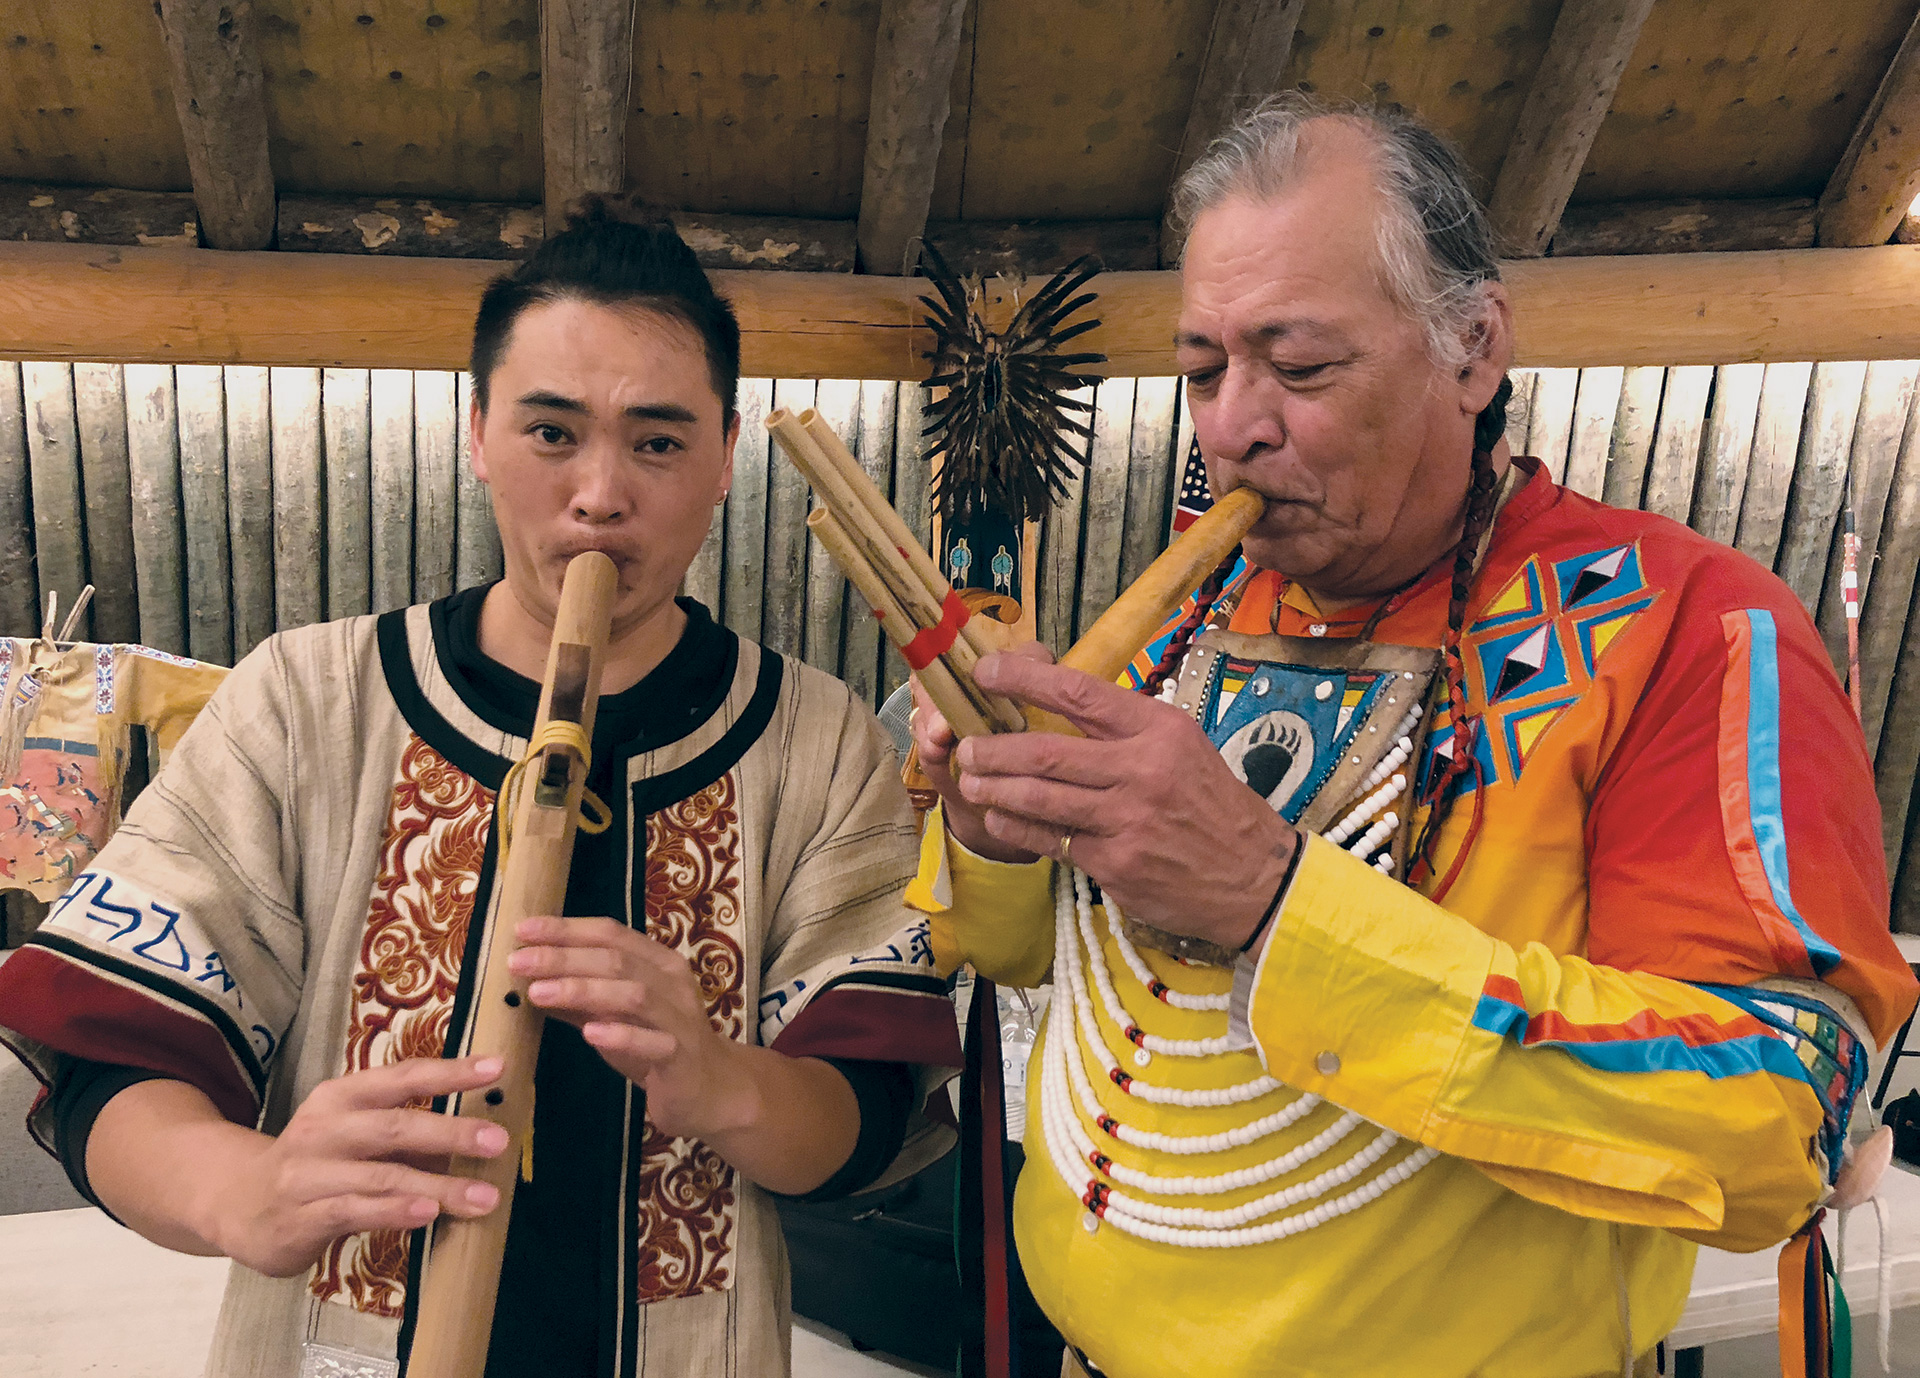 Two men playing wind instruments